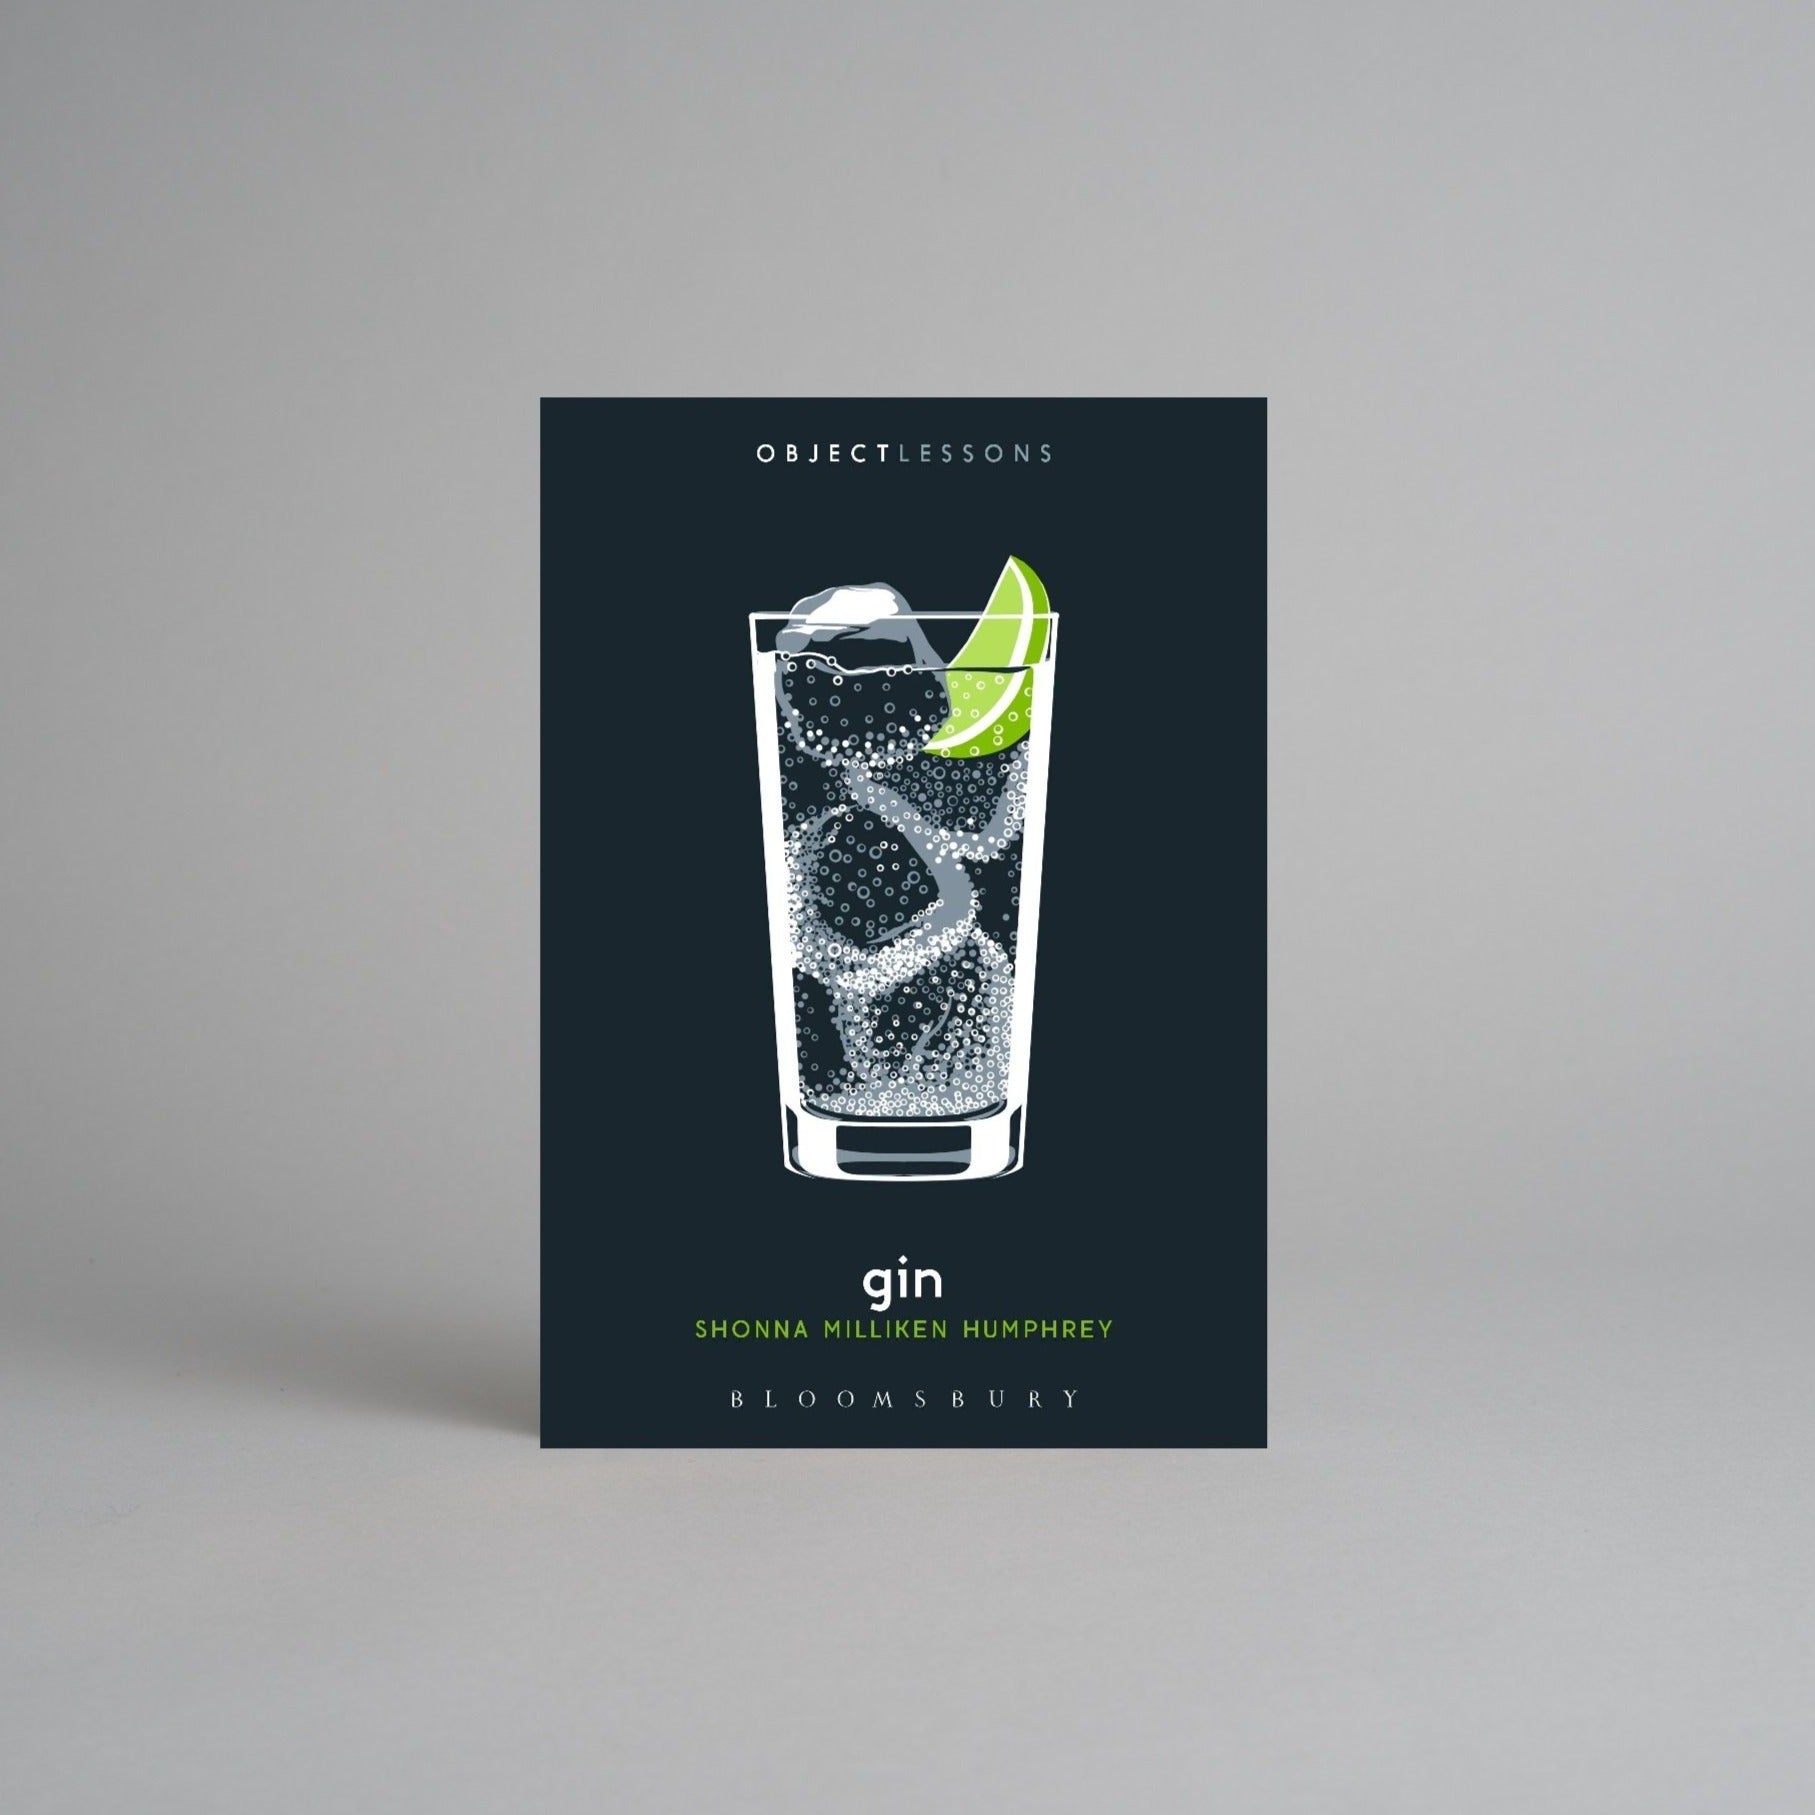 Object Lessons: Gin by Shonna Milliken Humphrey